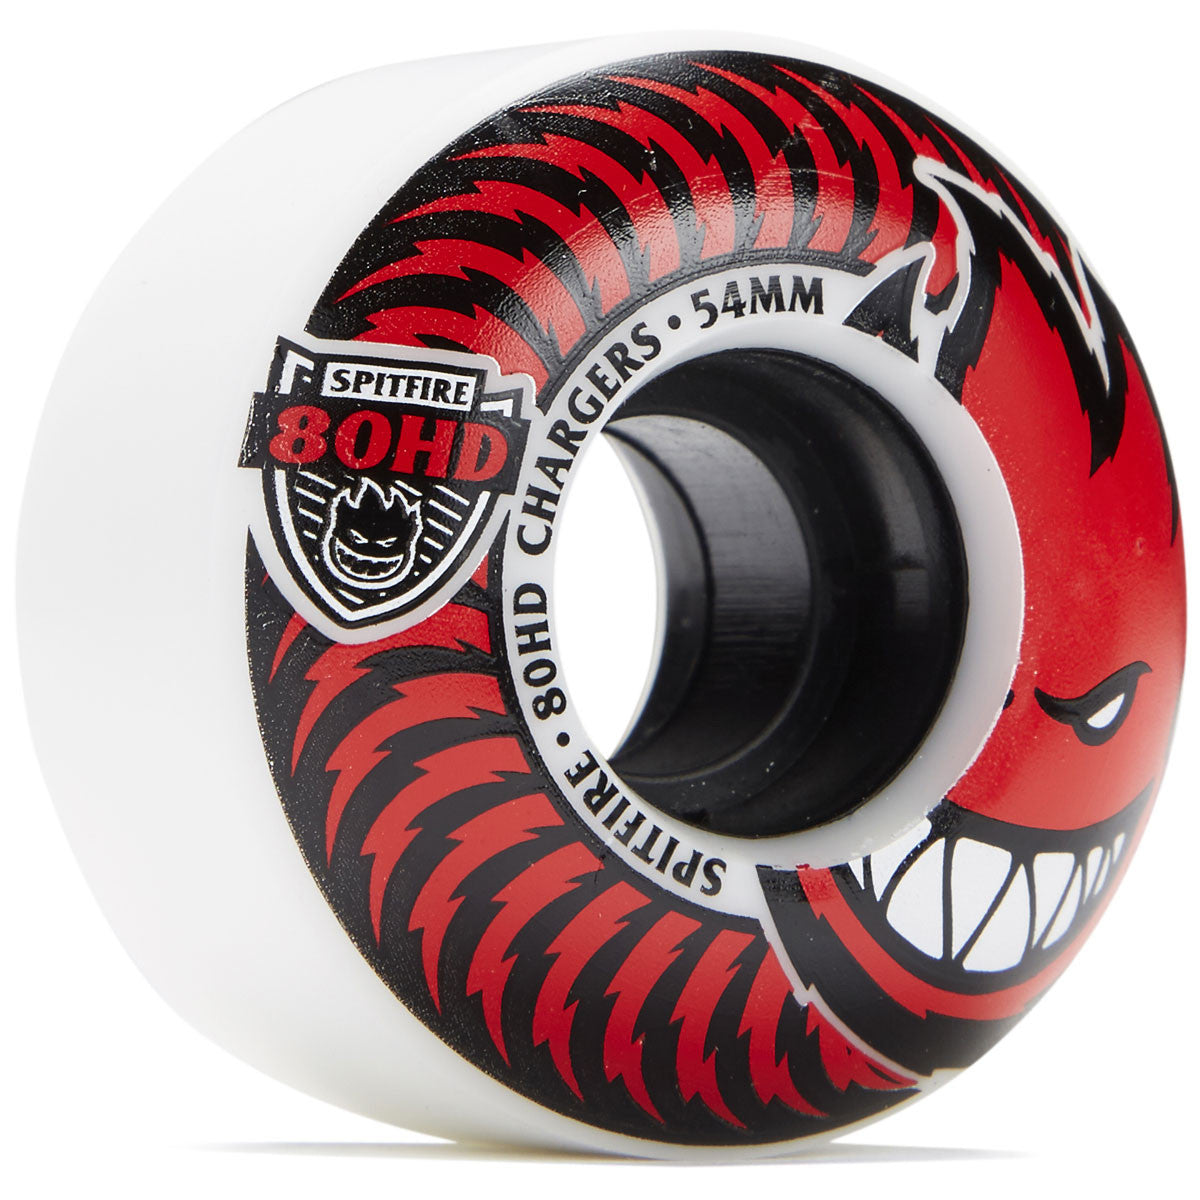 Spitfire 80HD Classic Chargers Soft Wheels Clear/Red 56mm 4 Pack - Feet First NJ